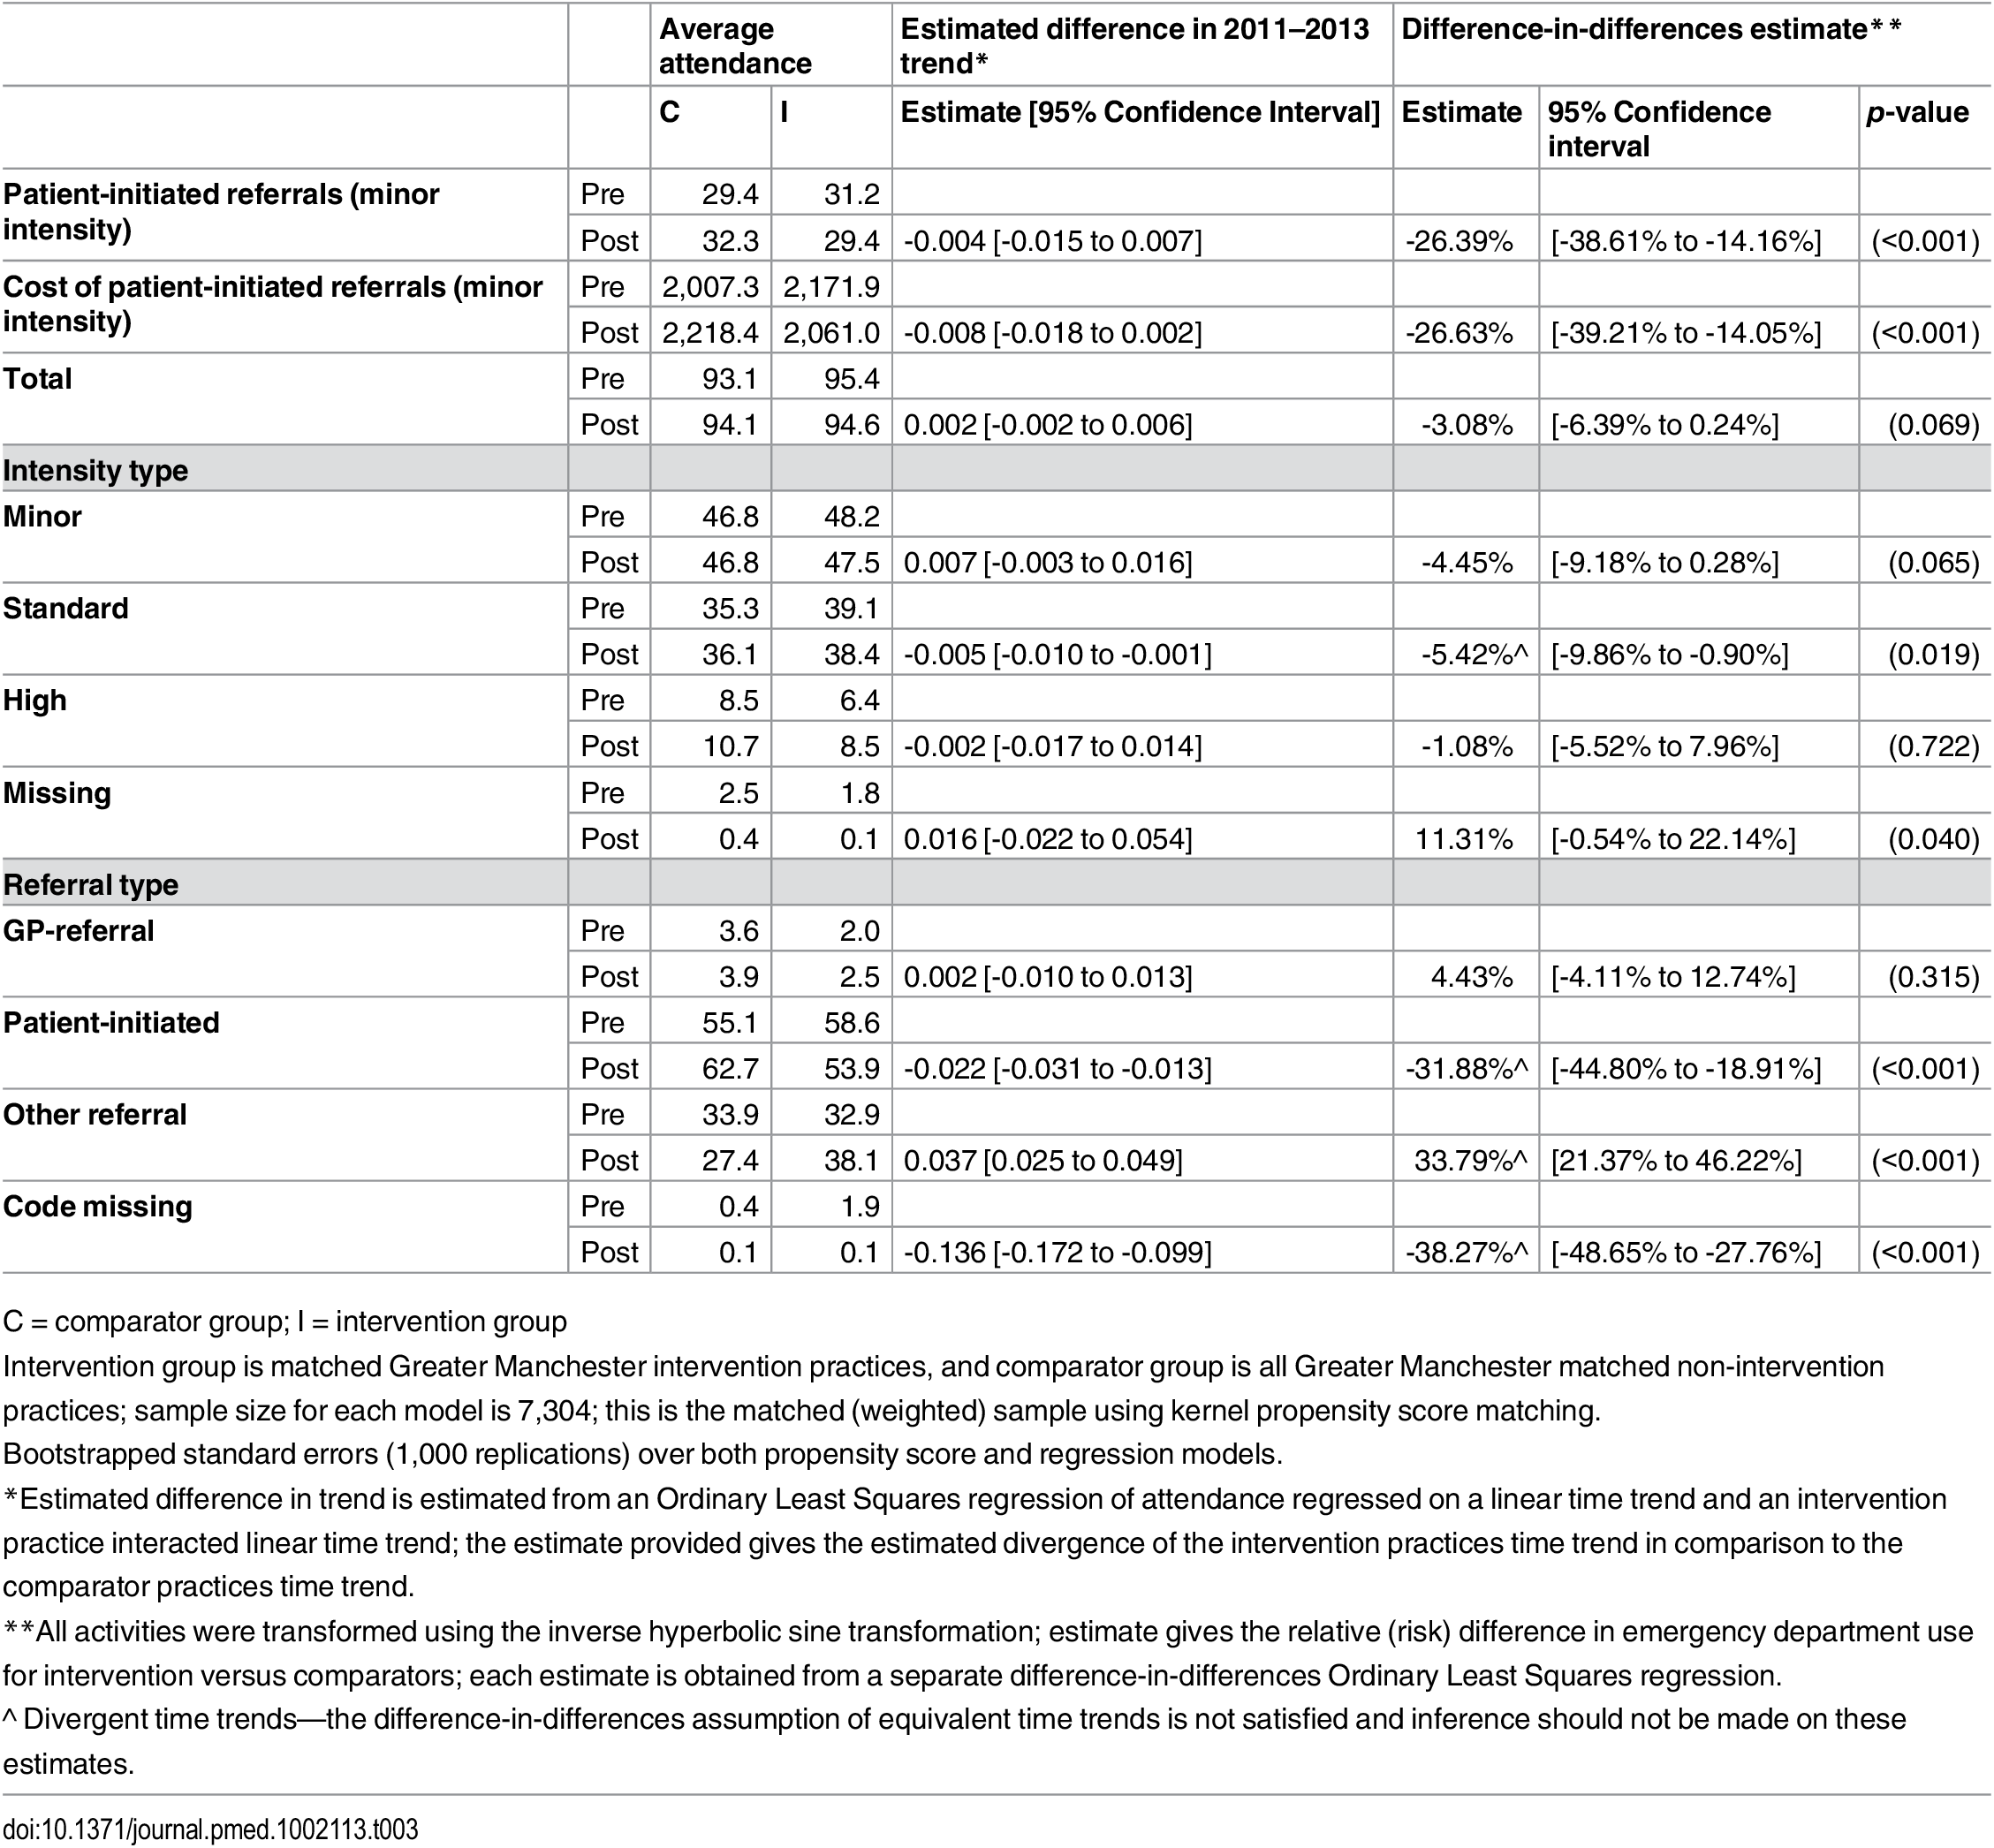 Average emergency department use per 1,000 registered patients in the pre- (2011 to 2013) and post- (2014) intervention period and difference-in-differences estimates of changes in emergency department use.